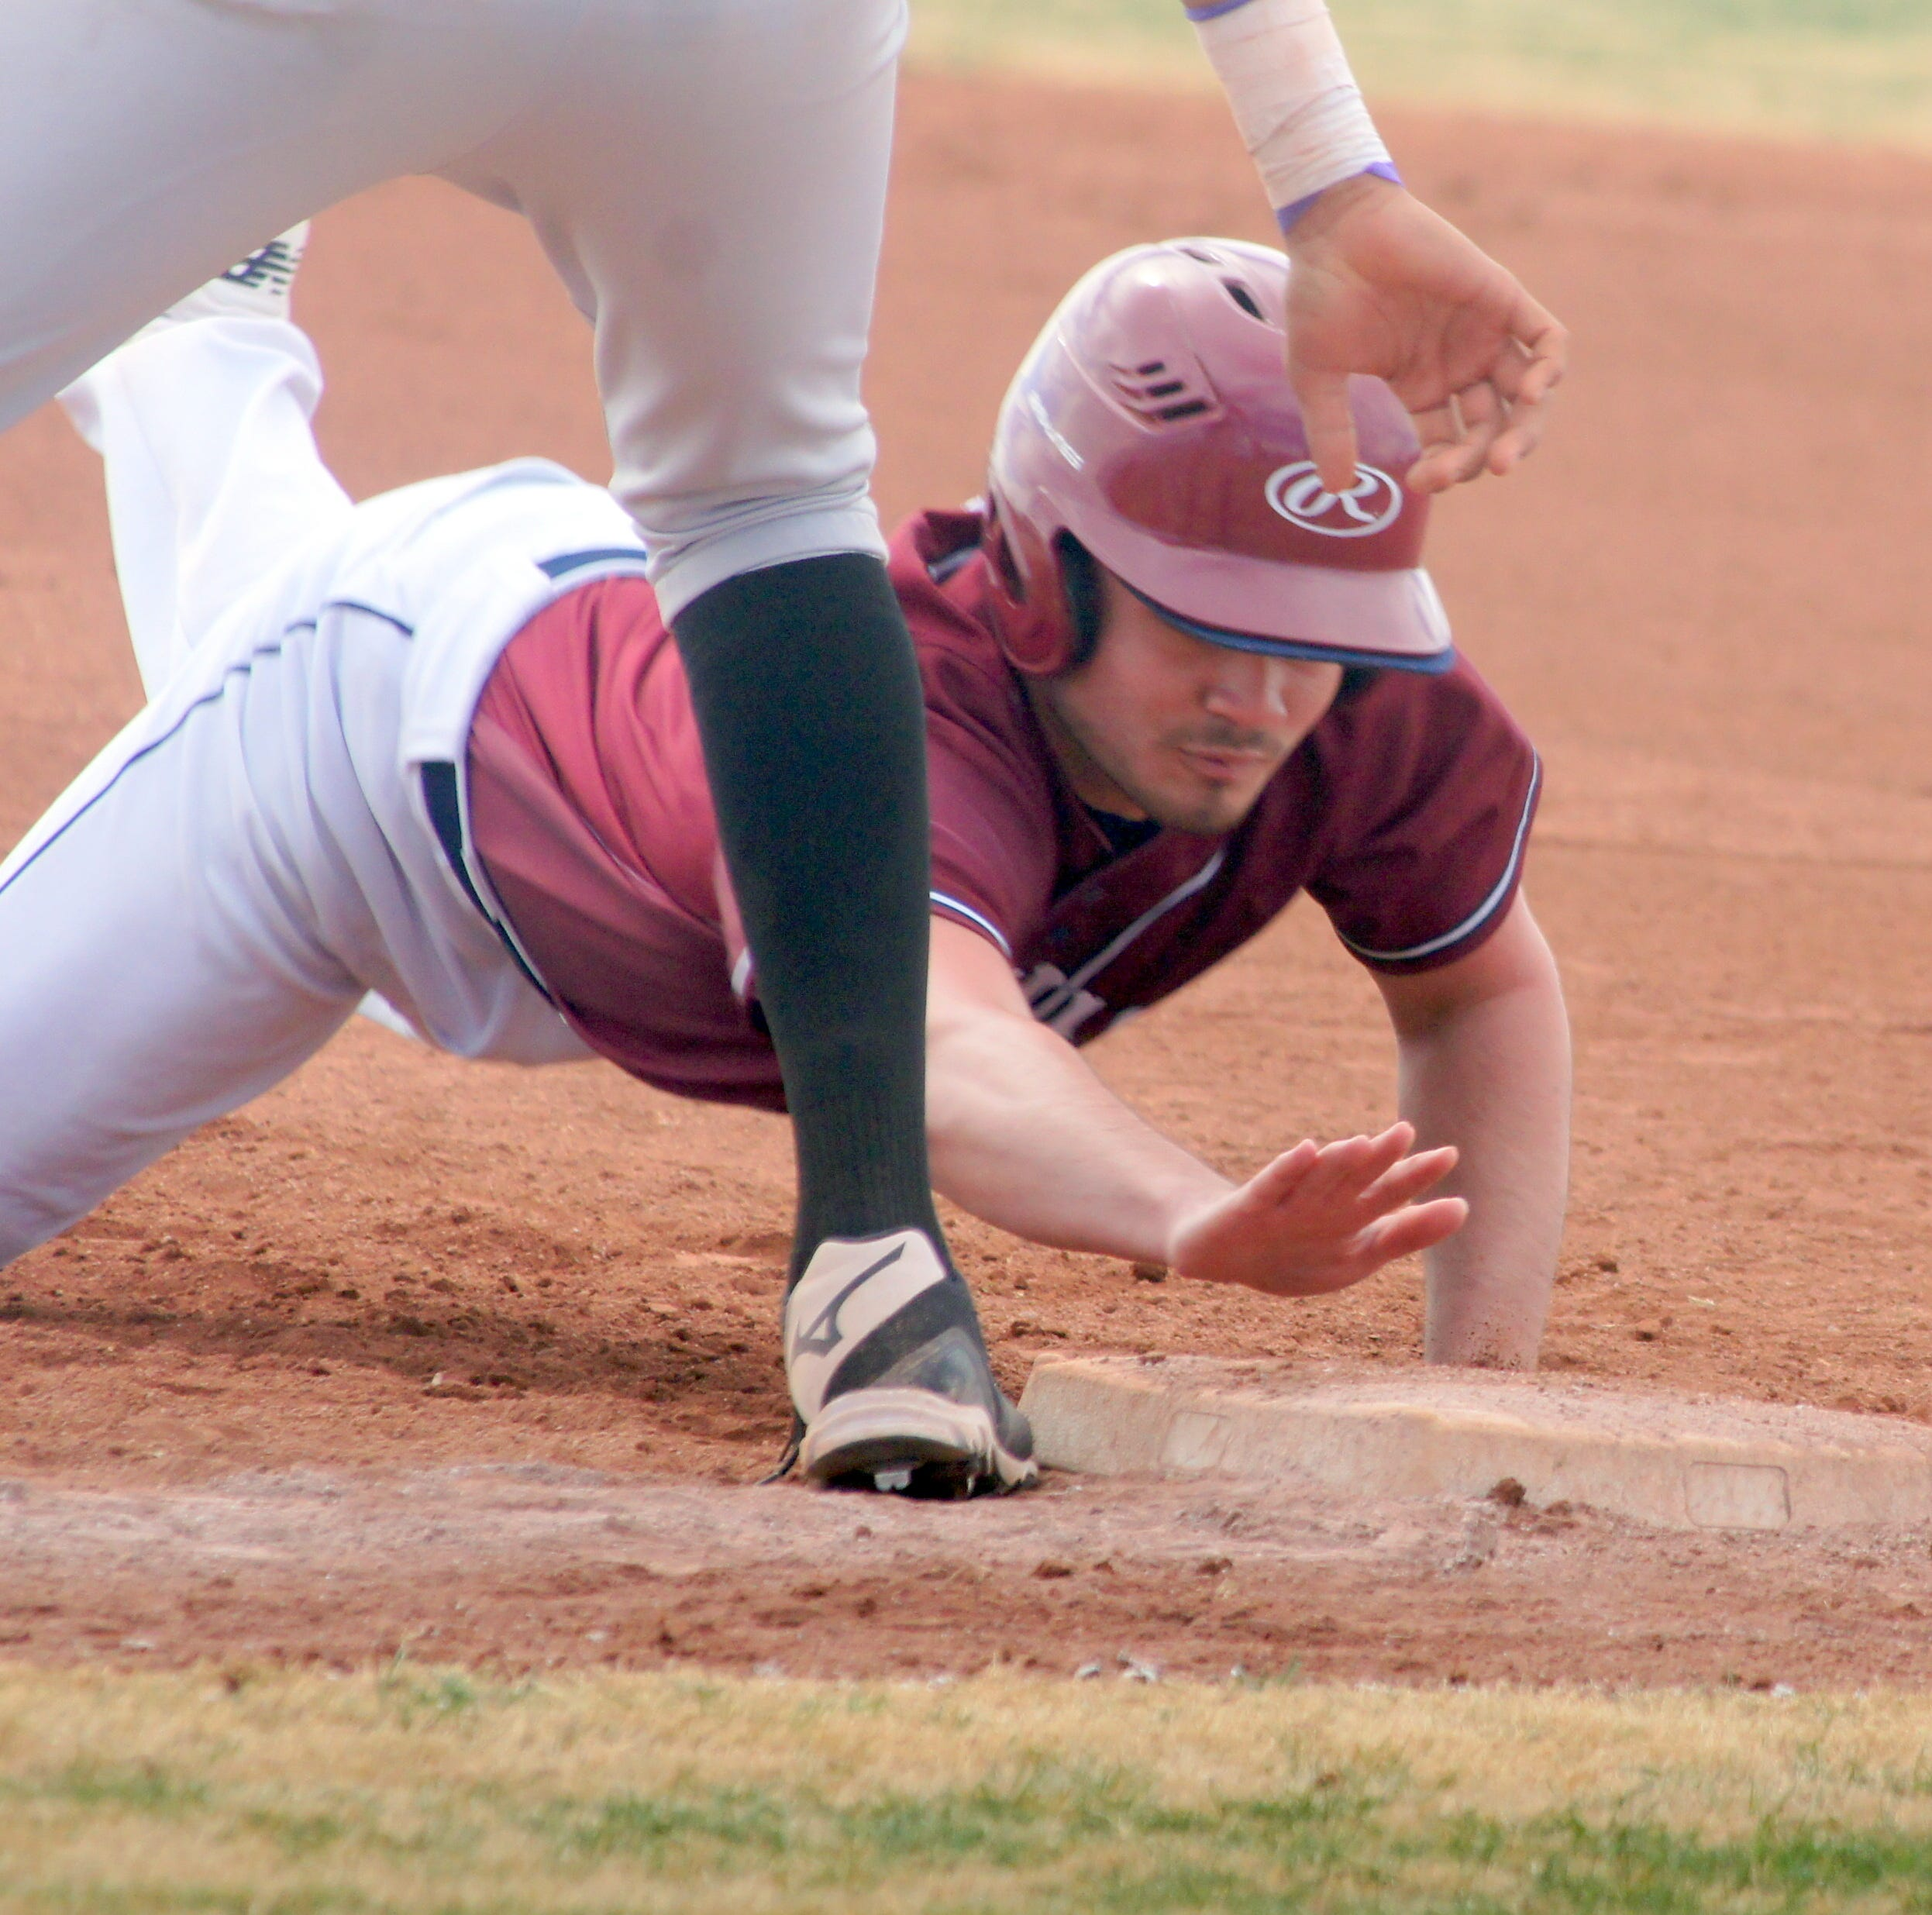 Deming High Wildcats winless at Southern New Mexico Baseball Invitational in Las Cruces